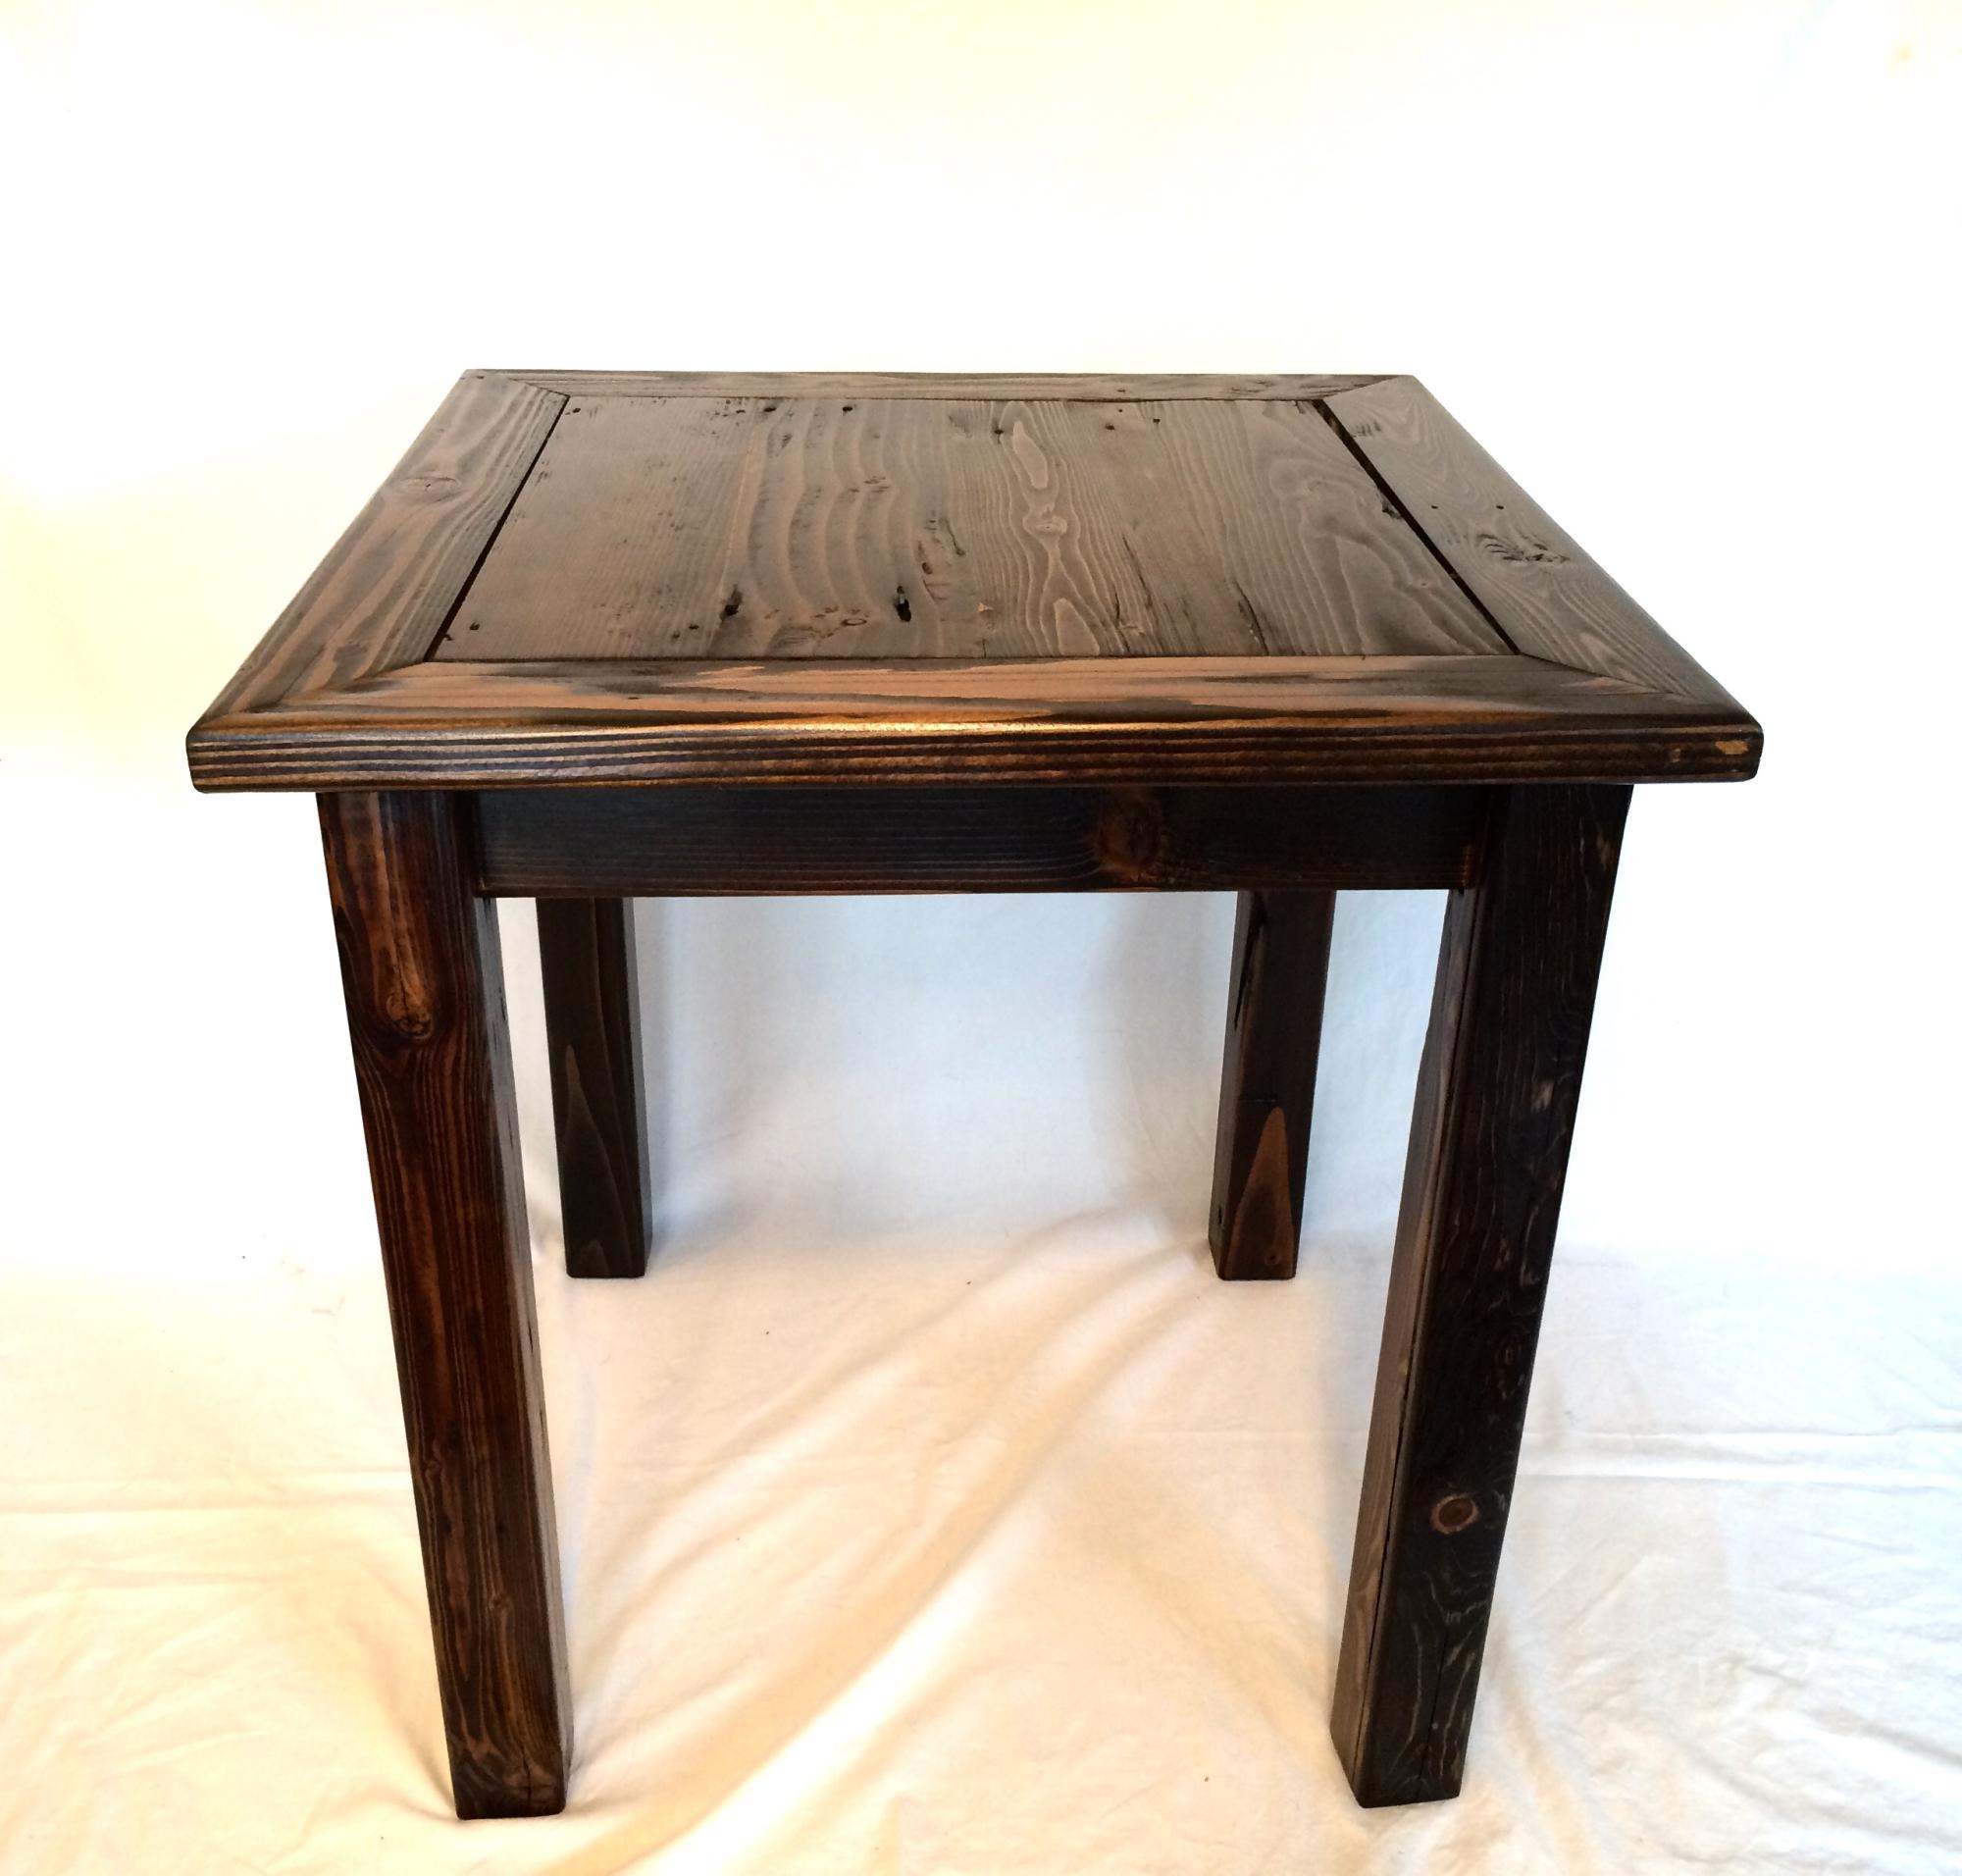 Stained drift lumber mixed wood end table.  23.5Lx23.5Wx25H  $275